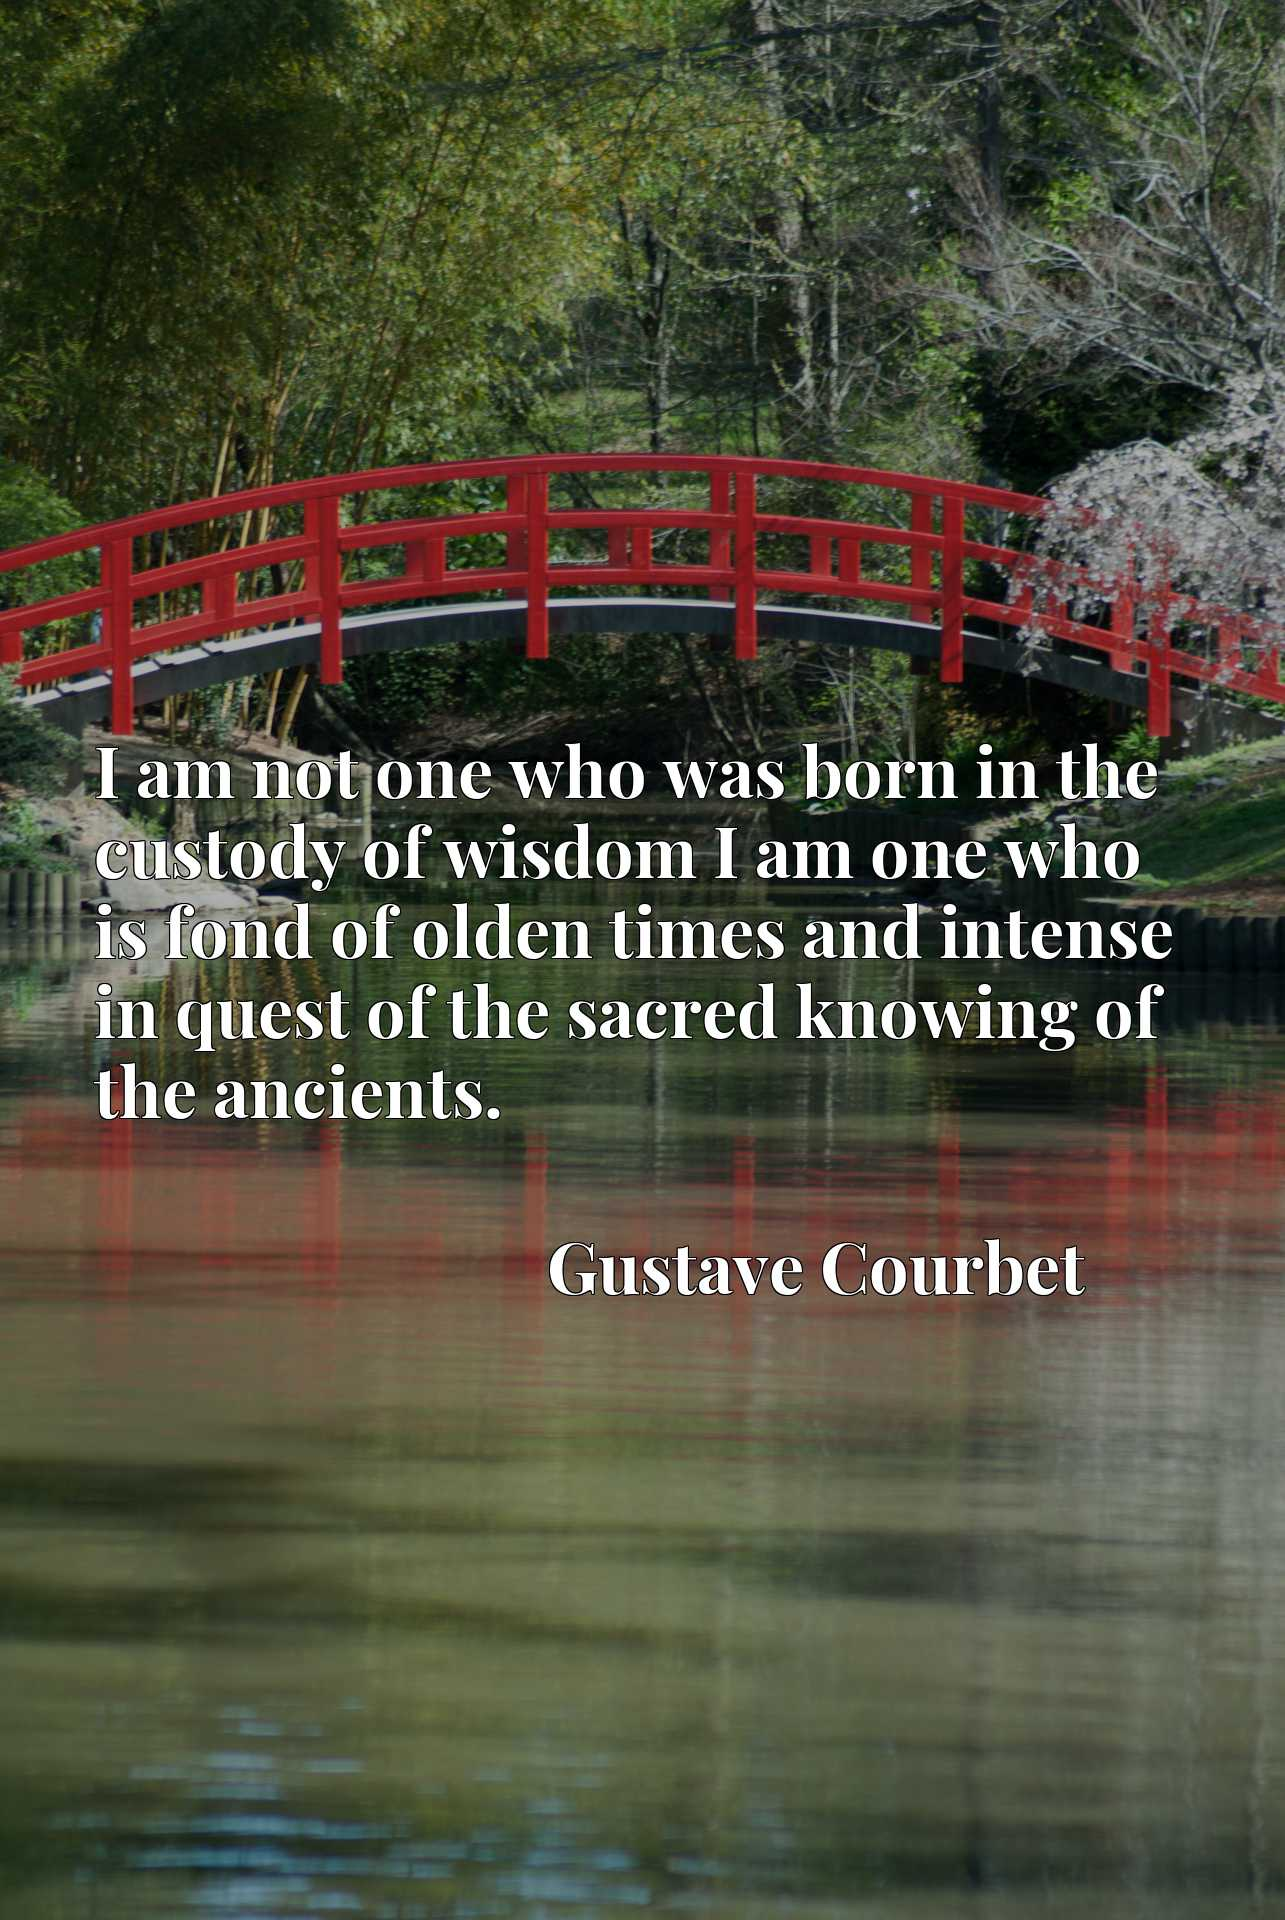 I am not one who was born in the custody of wisdom I am one who is fond of olden times and intense in quest of the sacred knowing of the ancients.